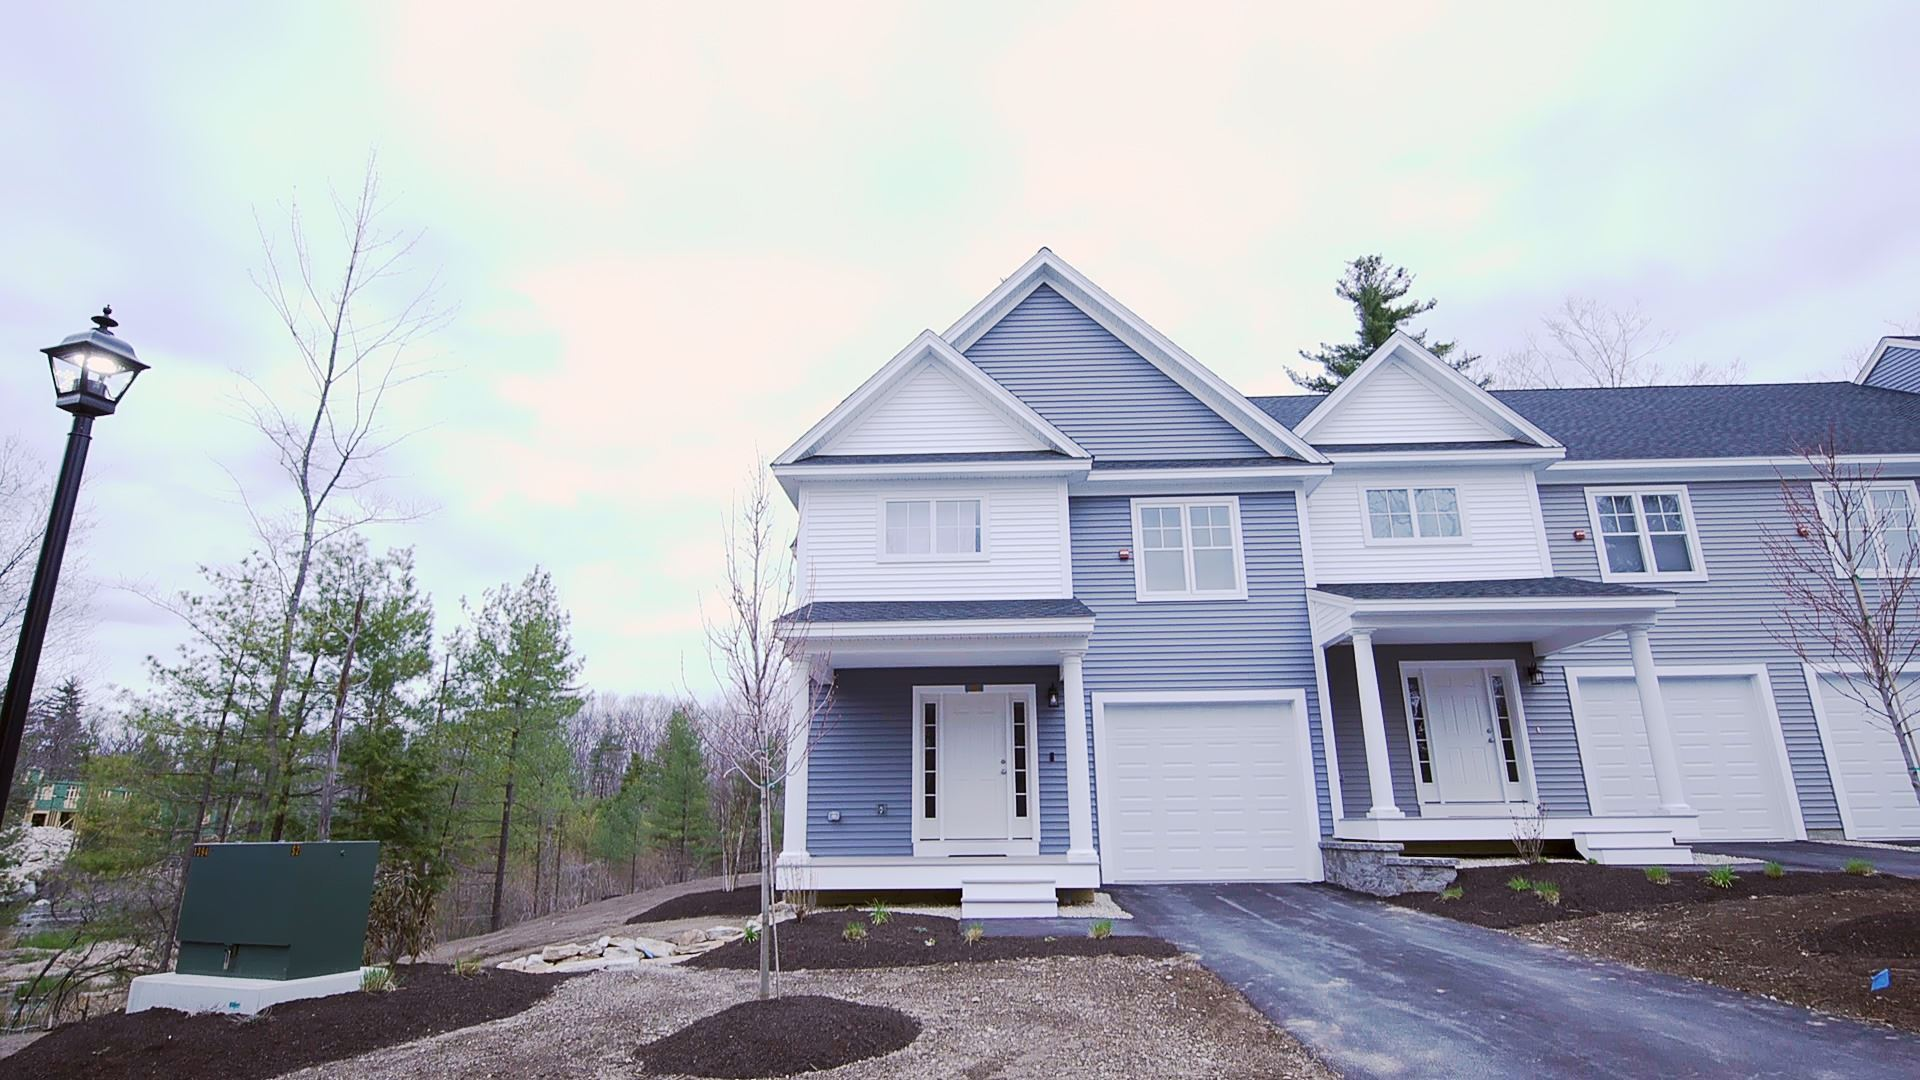 235 Knollwood Way, Manchester, NH 03102 - #: 4804917